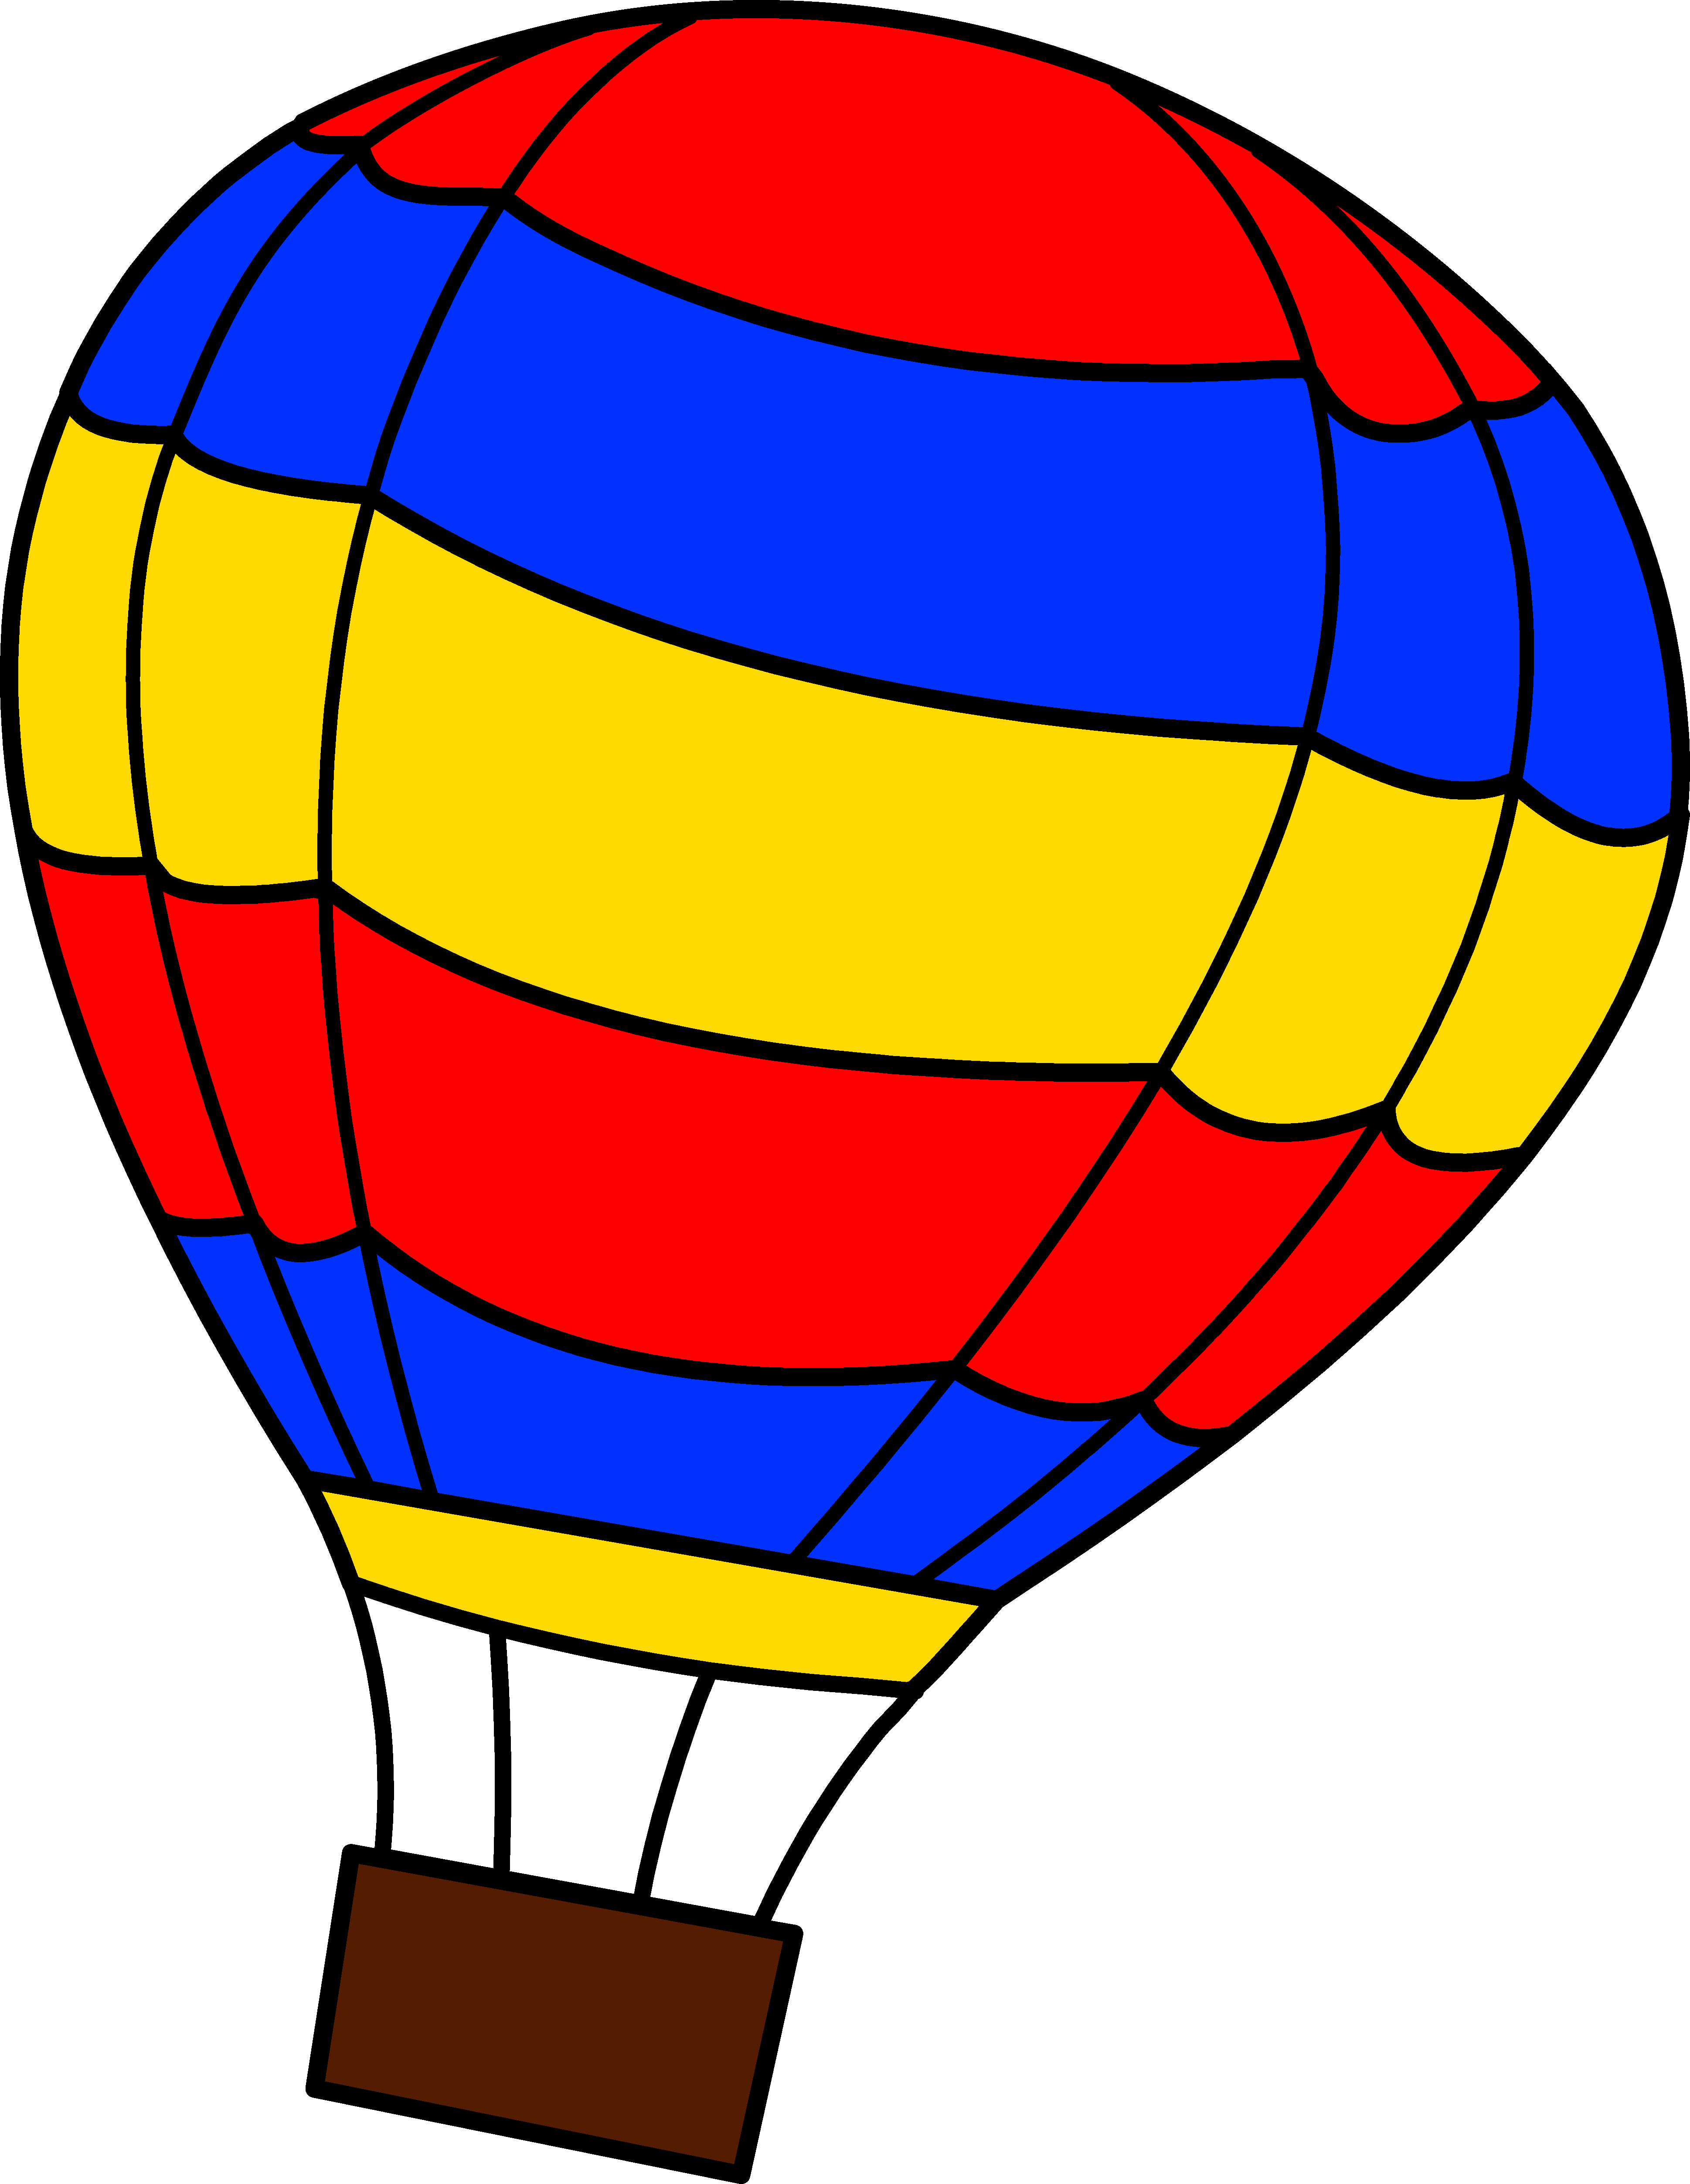 Simple Colorful Hot Air Balloon - Free Clip Art